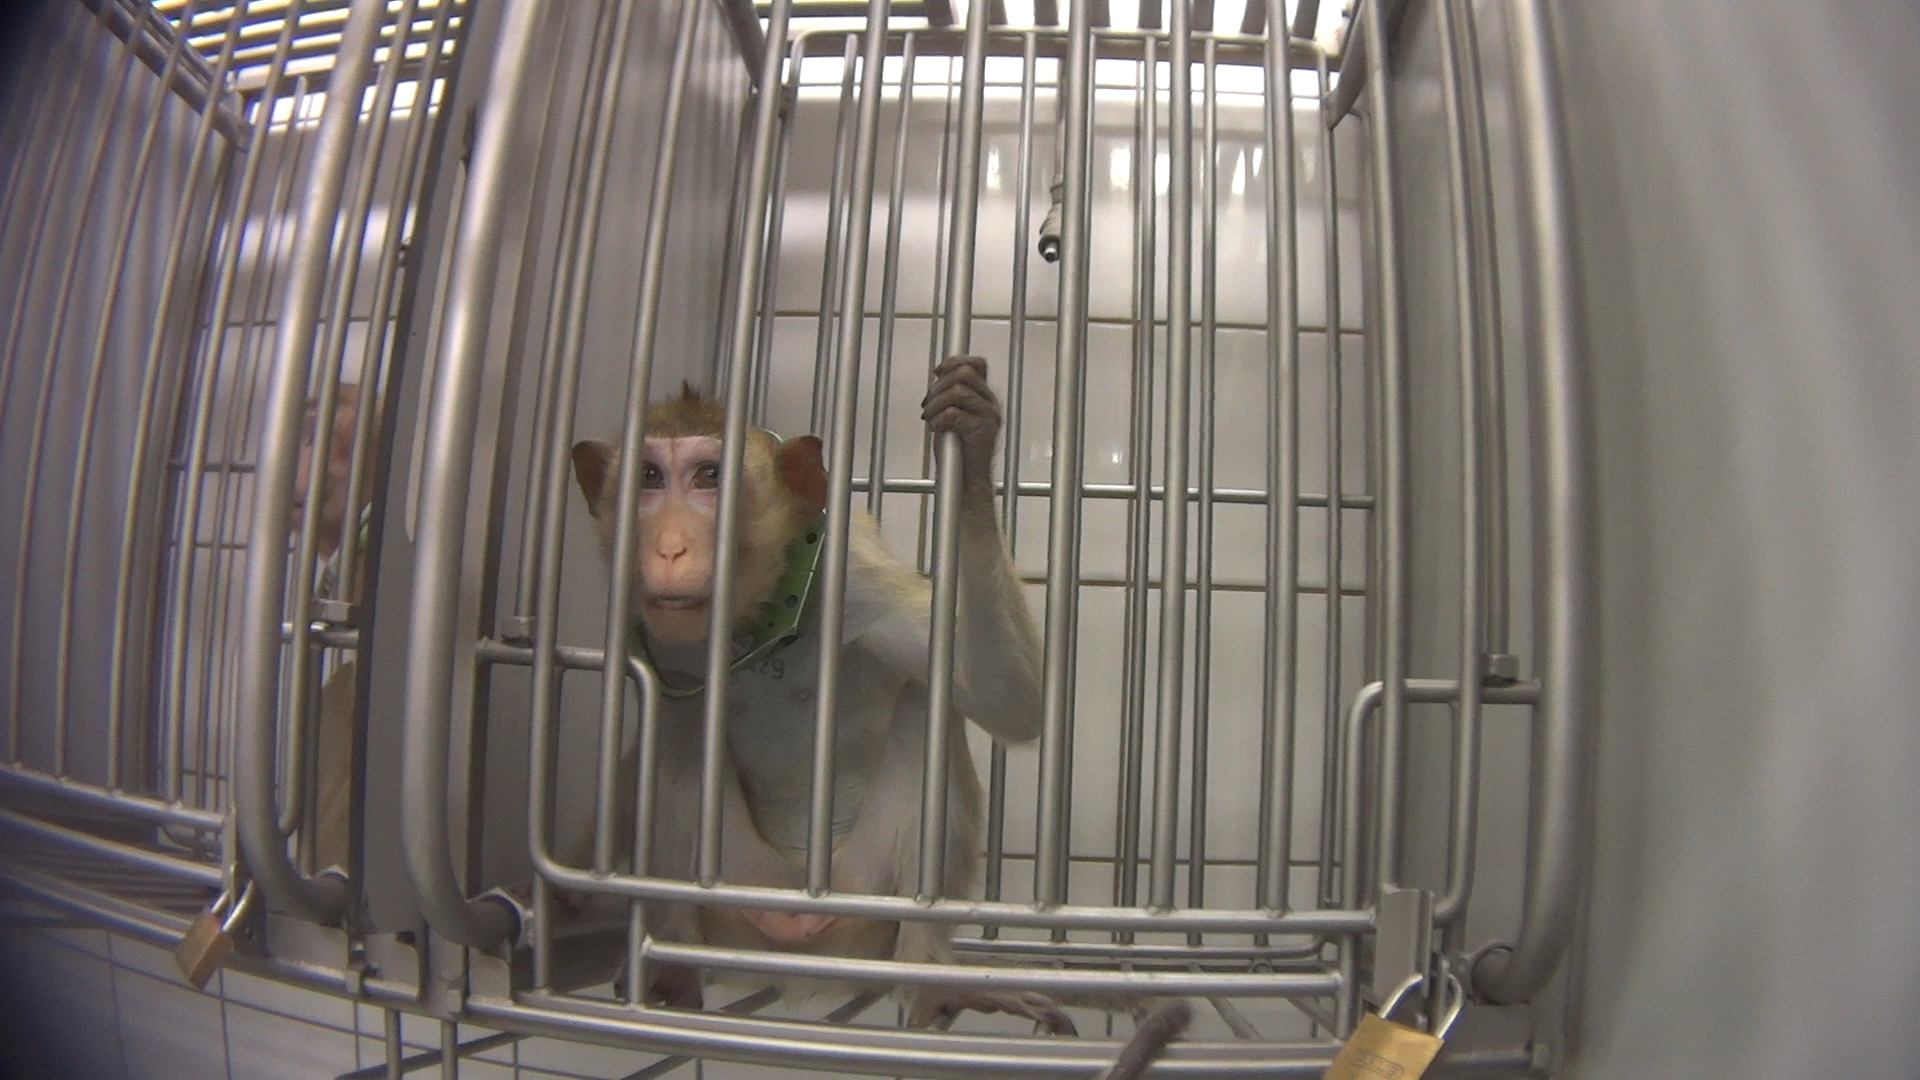 Long-tailed macaque in laboratory cage; photo credit SOKO Tierschutz/Cruelty Free International